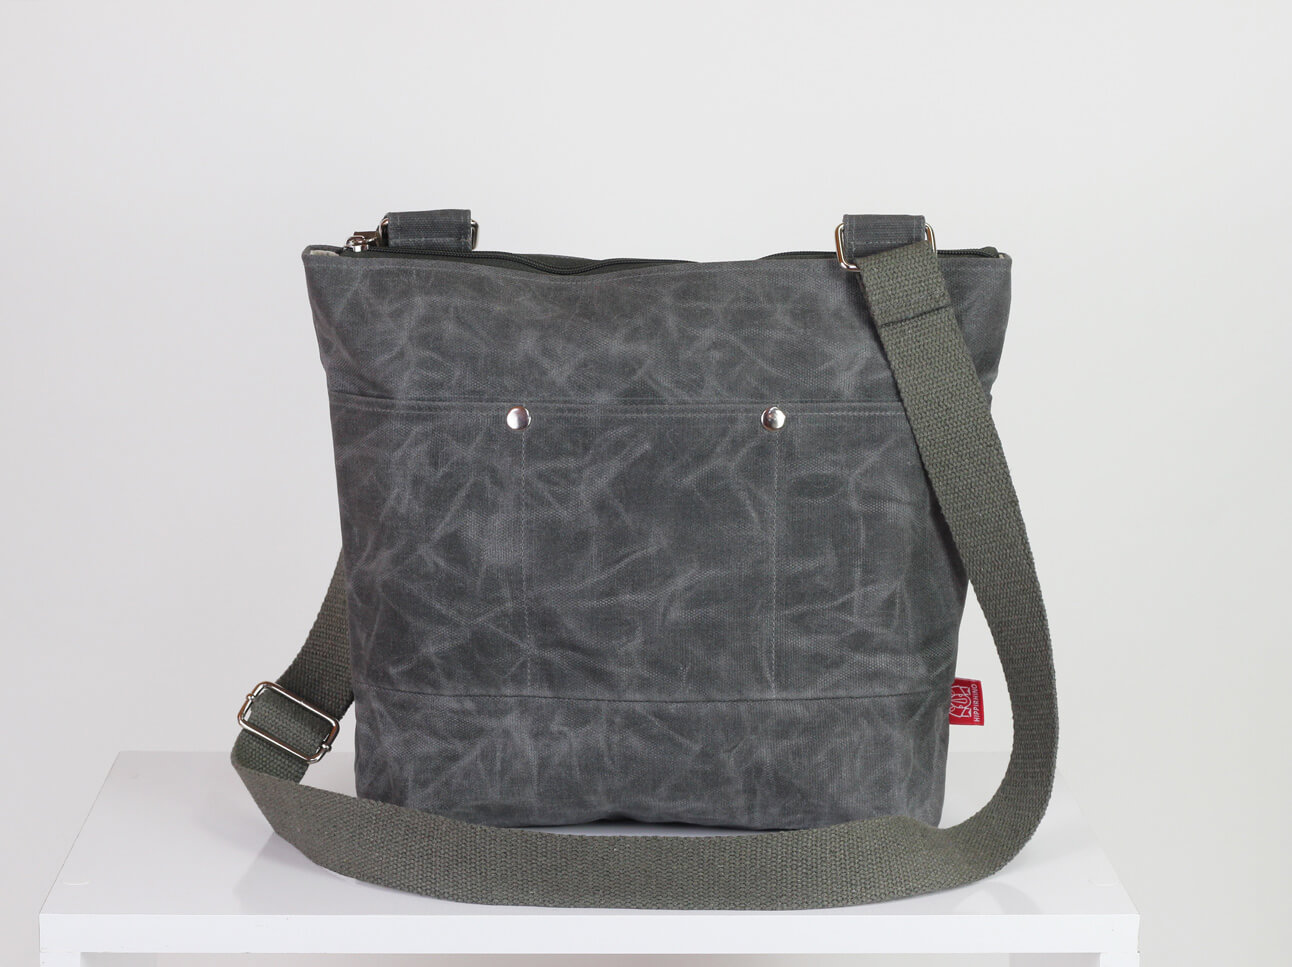 6c5820c43607 Gray waxed unisex messenger tote bag handmade pocket on front full ...